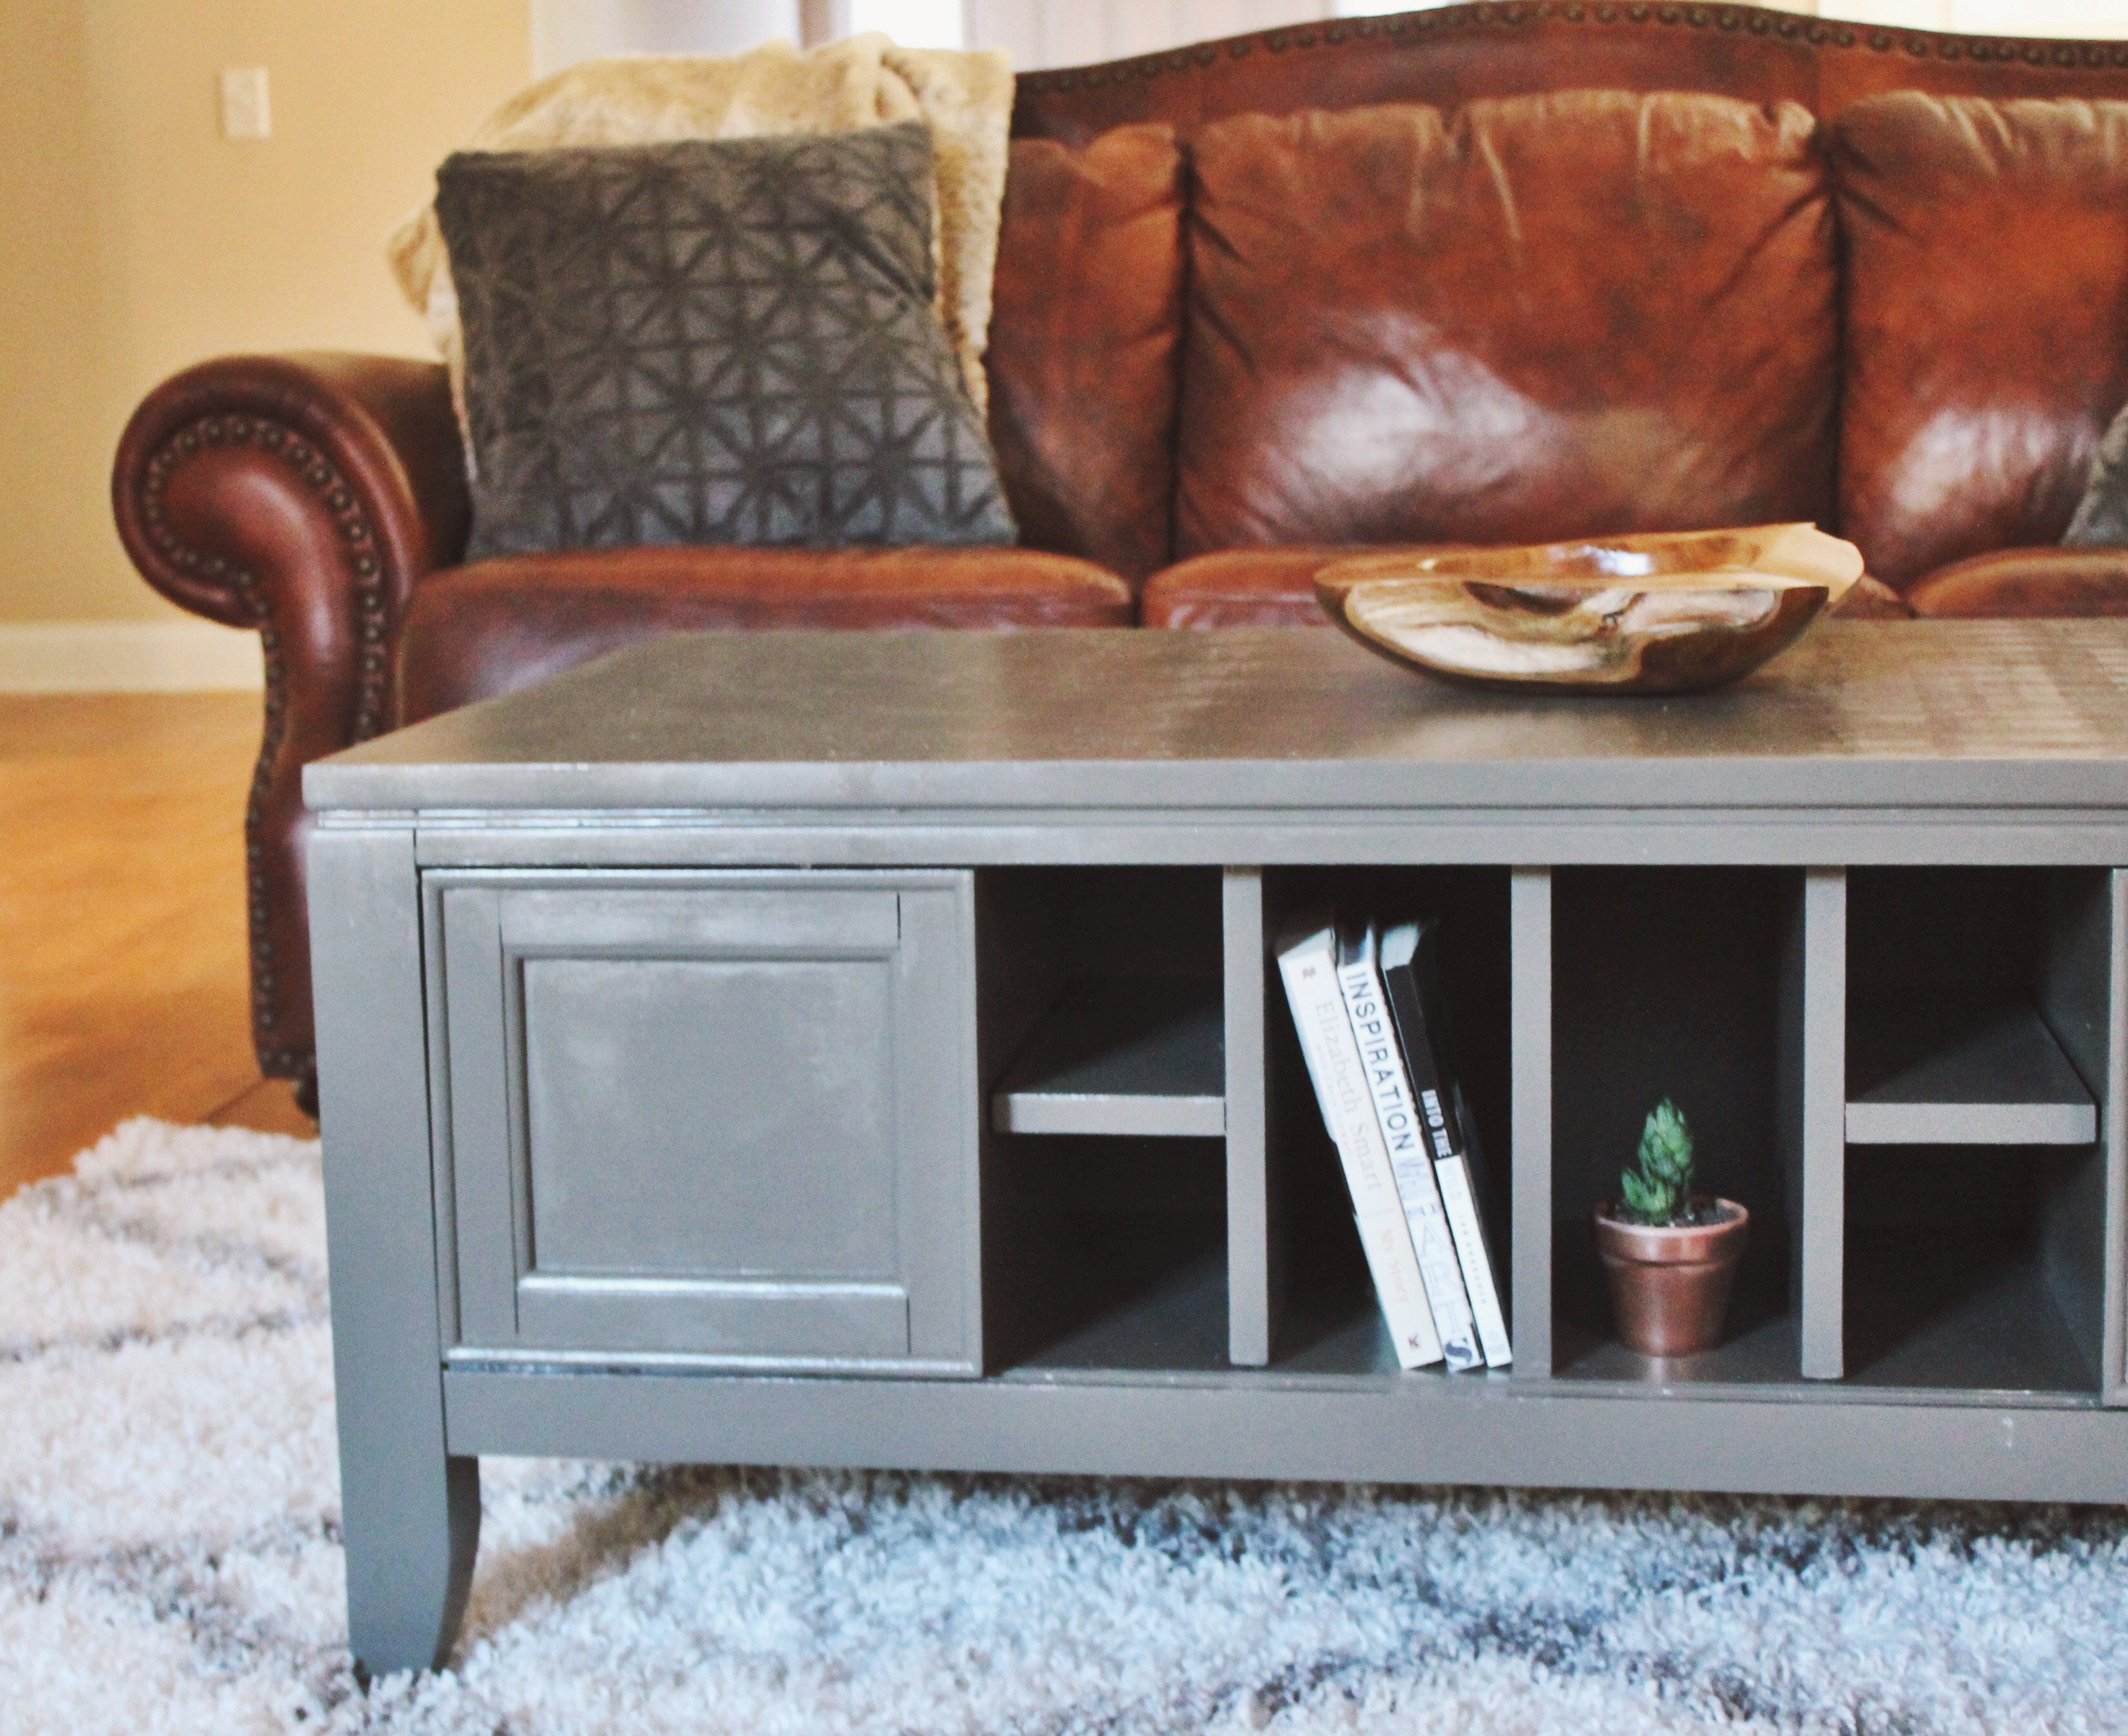 Home Goods Coffee Table Project House To Home Diy Coffee Table Makeover Konnor With A K